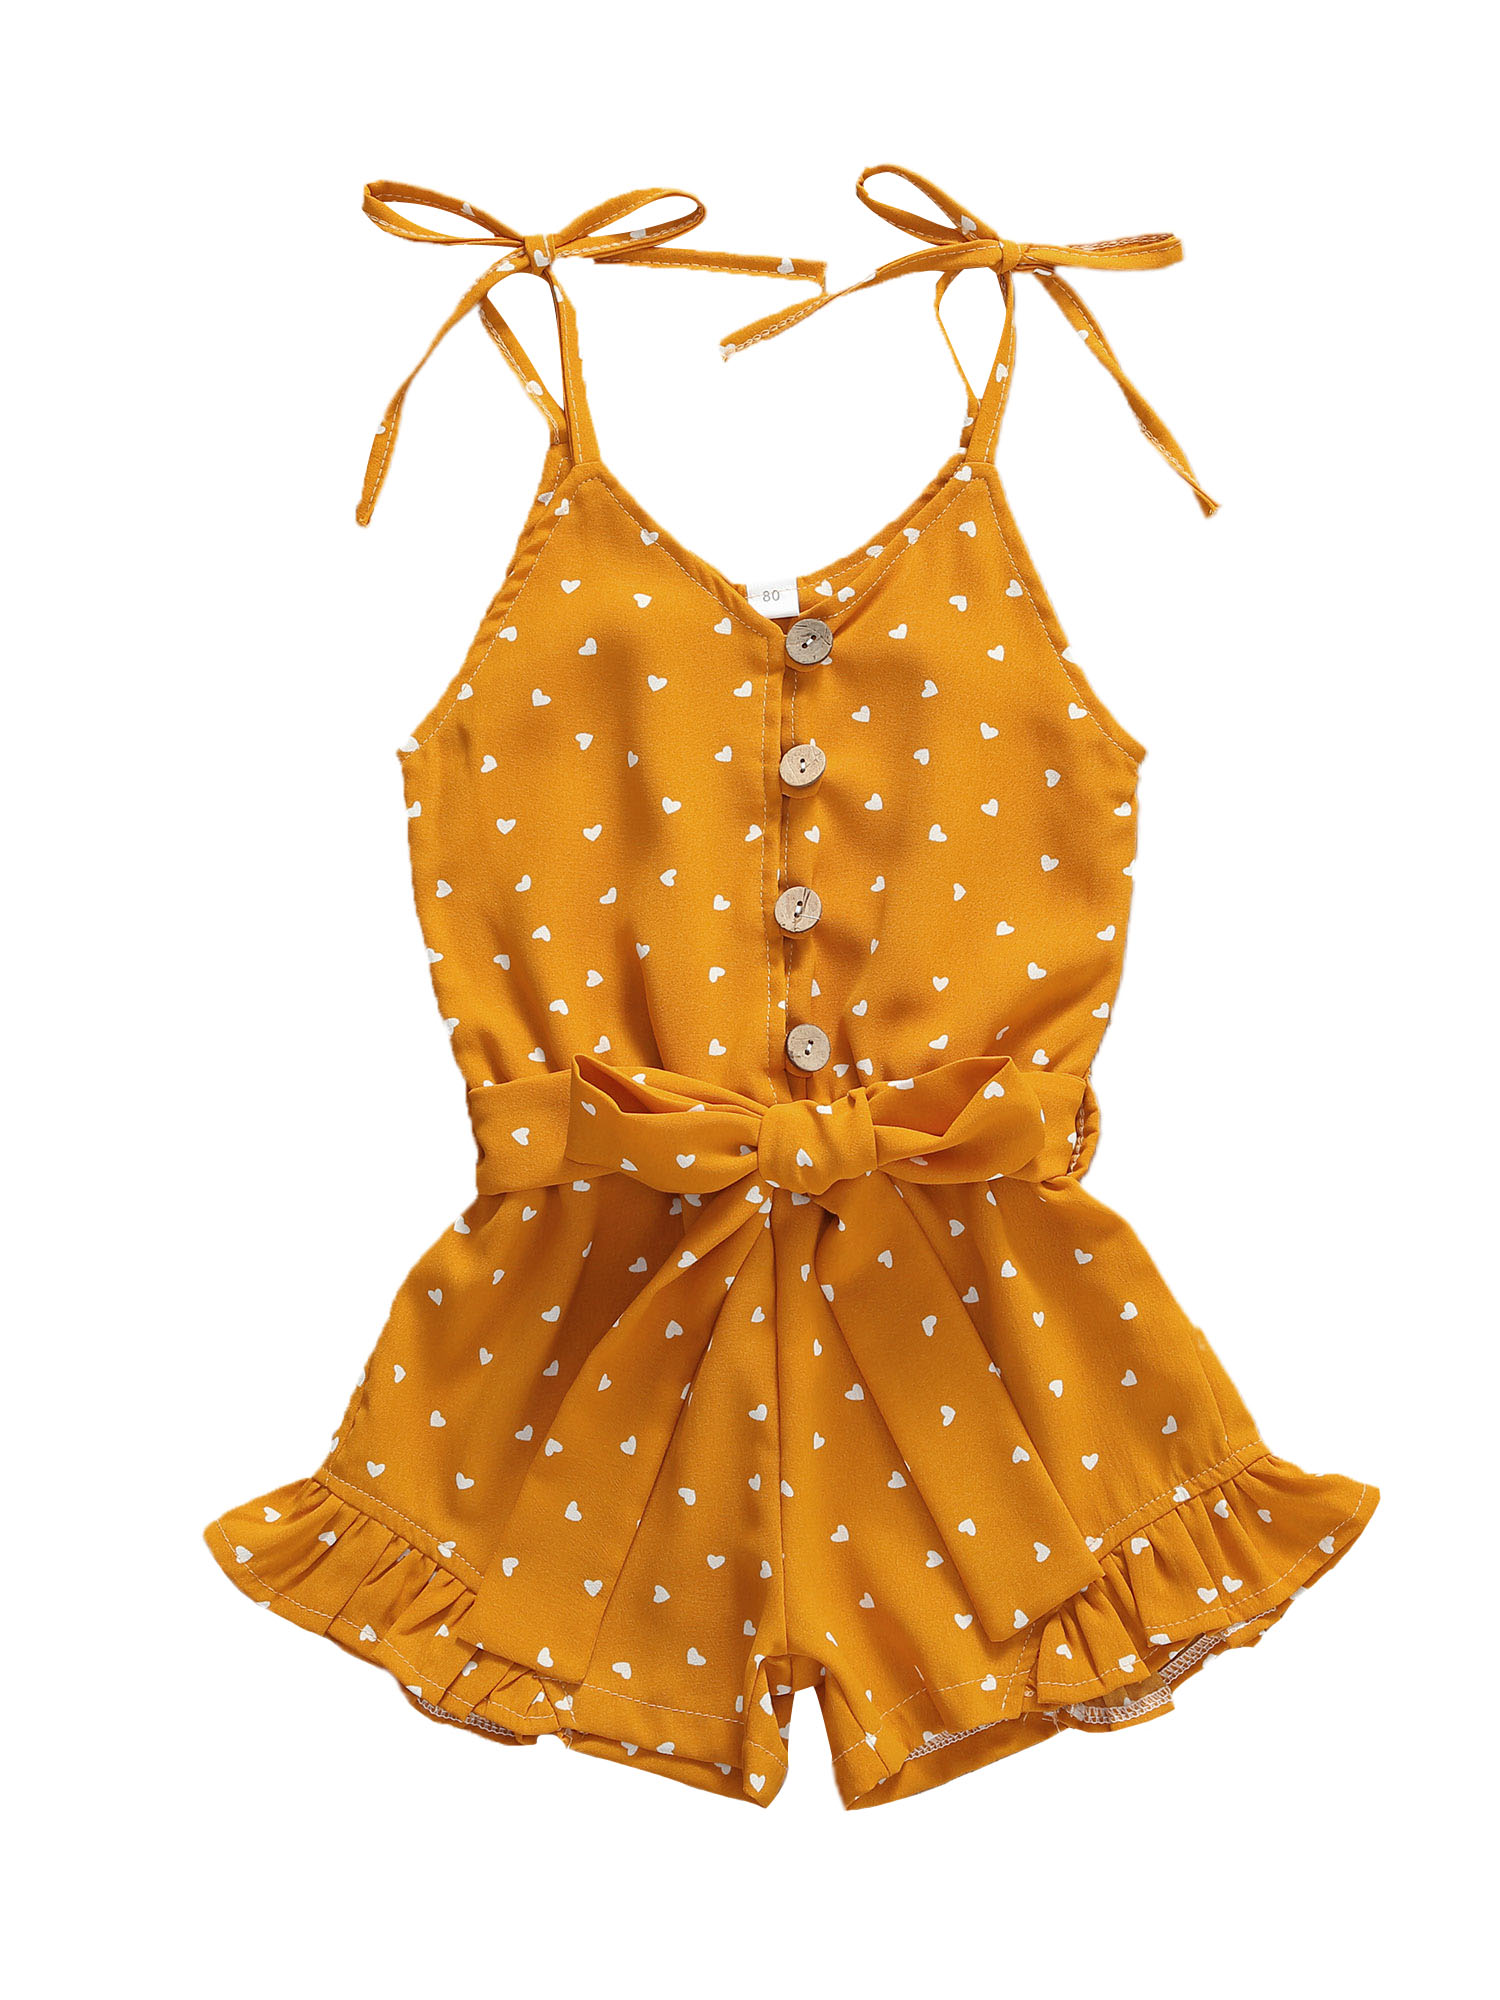 1-6Y Baby Girls Summer Rompers Sleveless Heart Print  Ruffles Single Breasted Romper One Piece Jumpsuits Sweet Girls Outfits